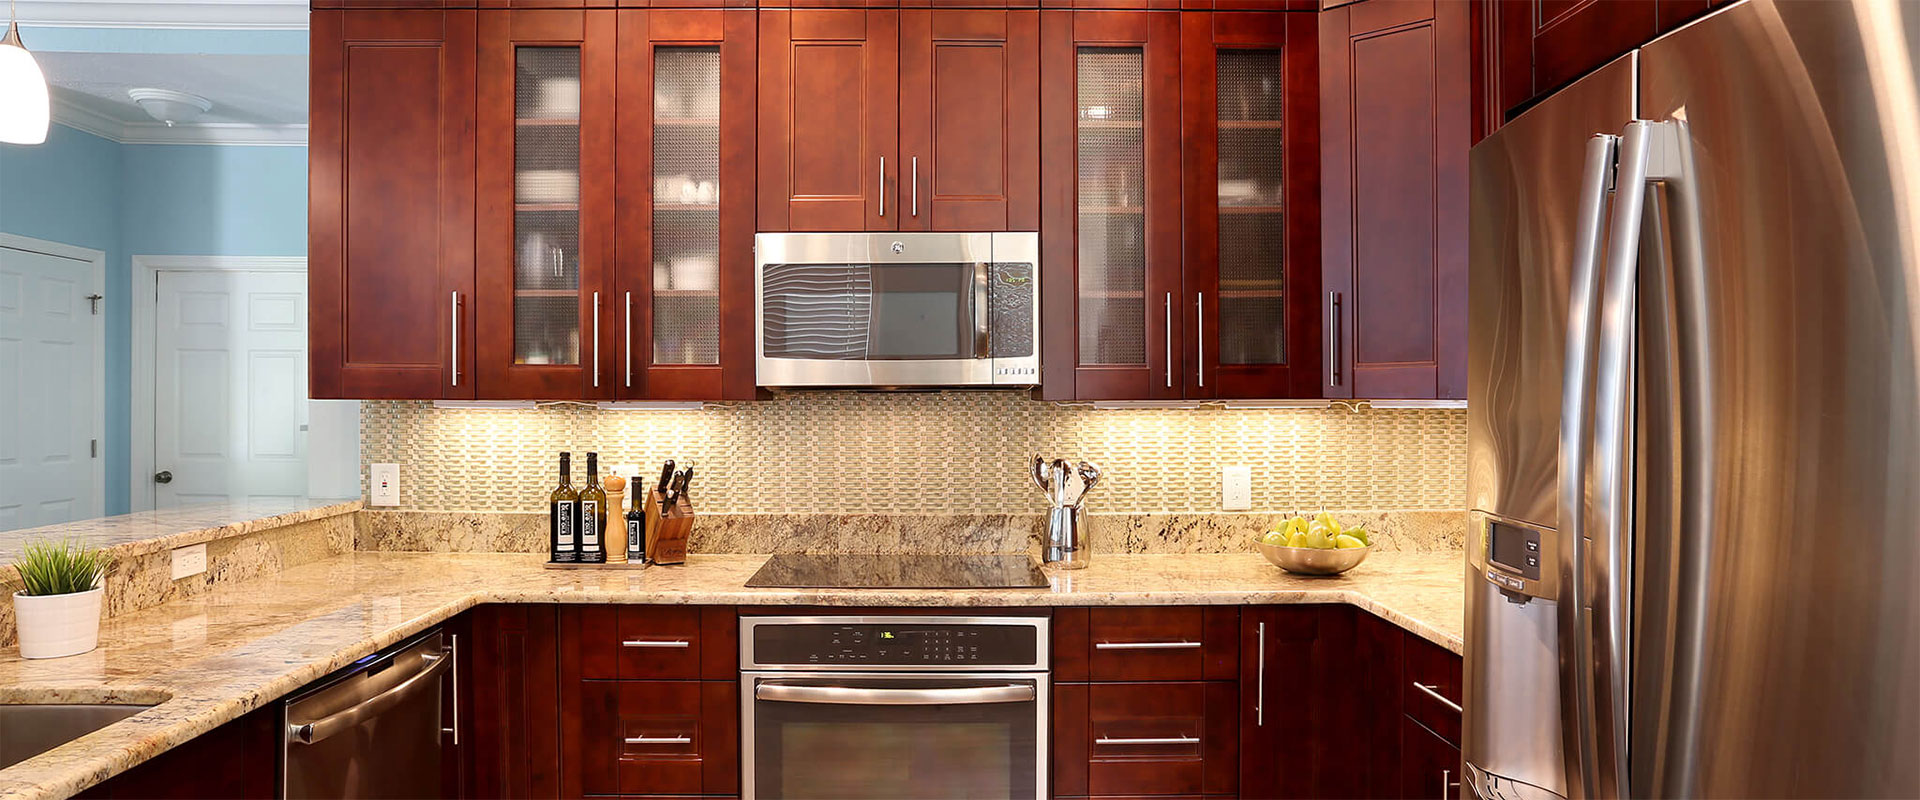 Tampa kitchen cabinets granite countertops real wood for Kitchen cabinets tampa